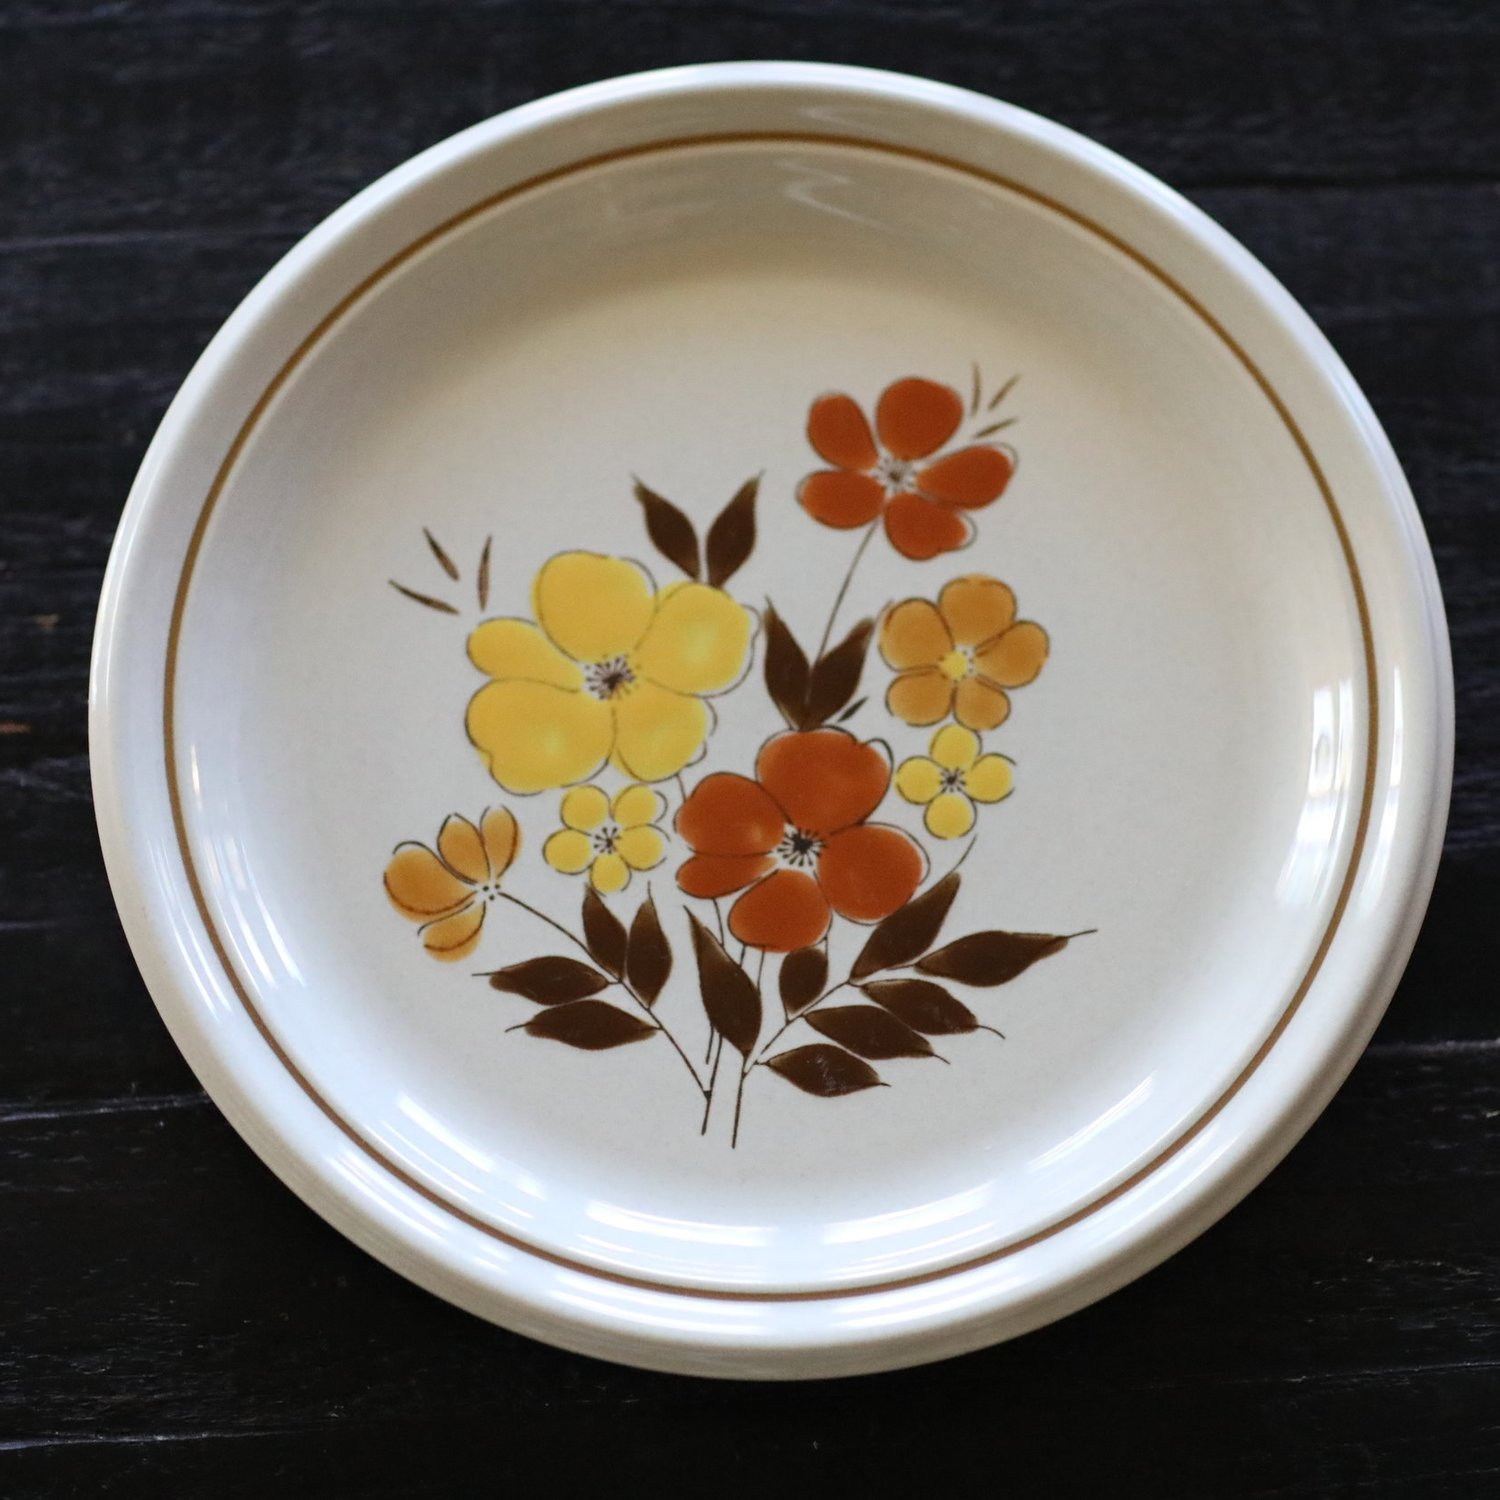 Stoneware, vintage and mismatched. Orange, yellow, rust flowers. Vintage rentals in the Temecula Valley.